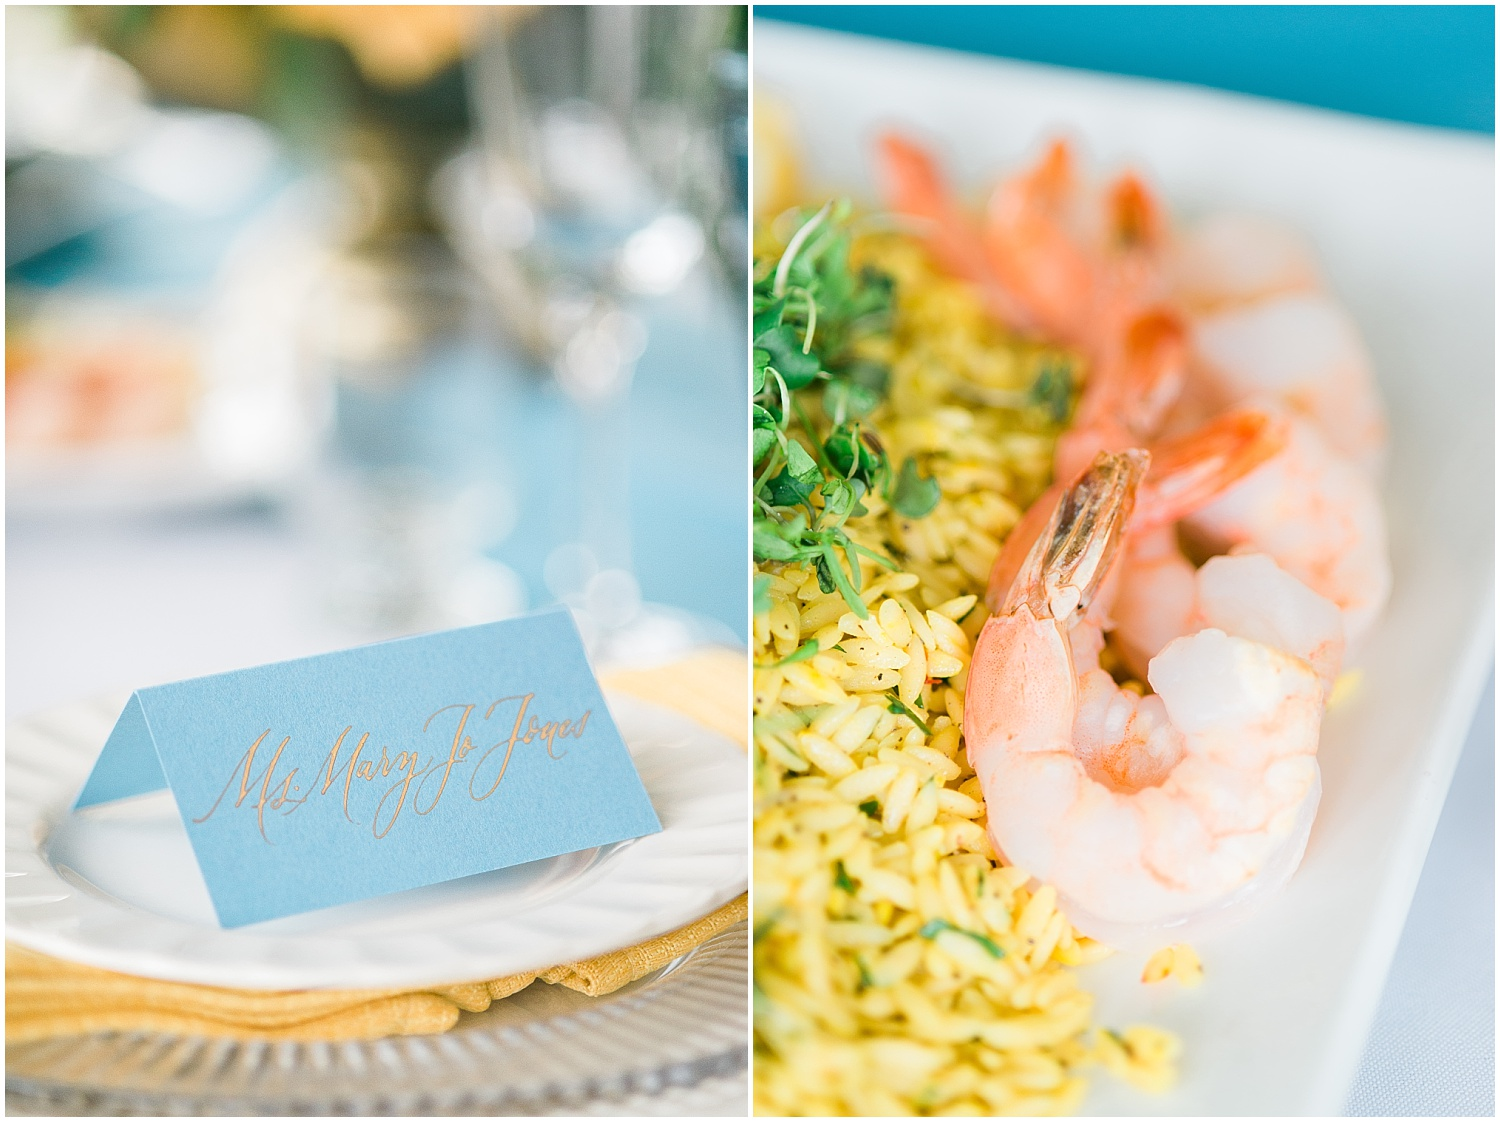 shrimp-wedding-dinner